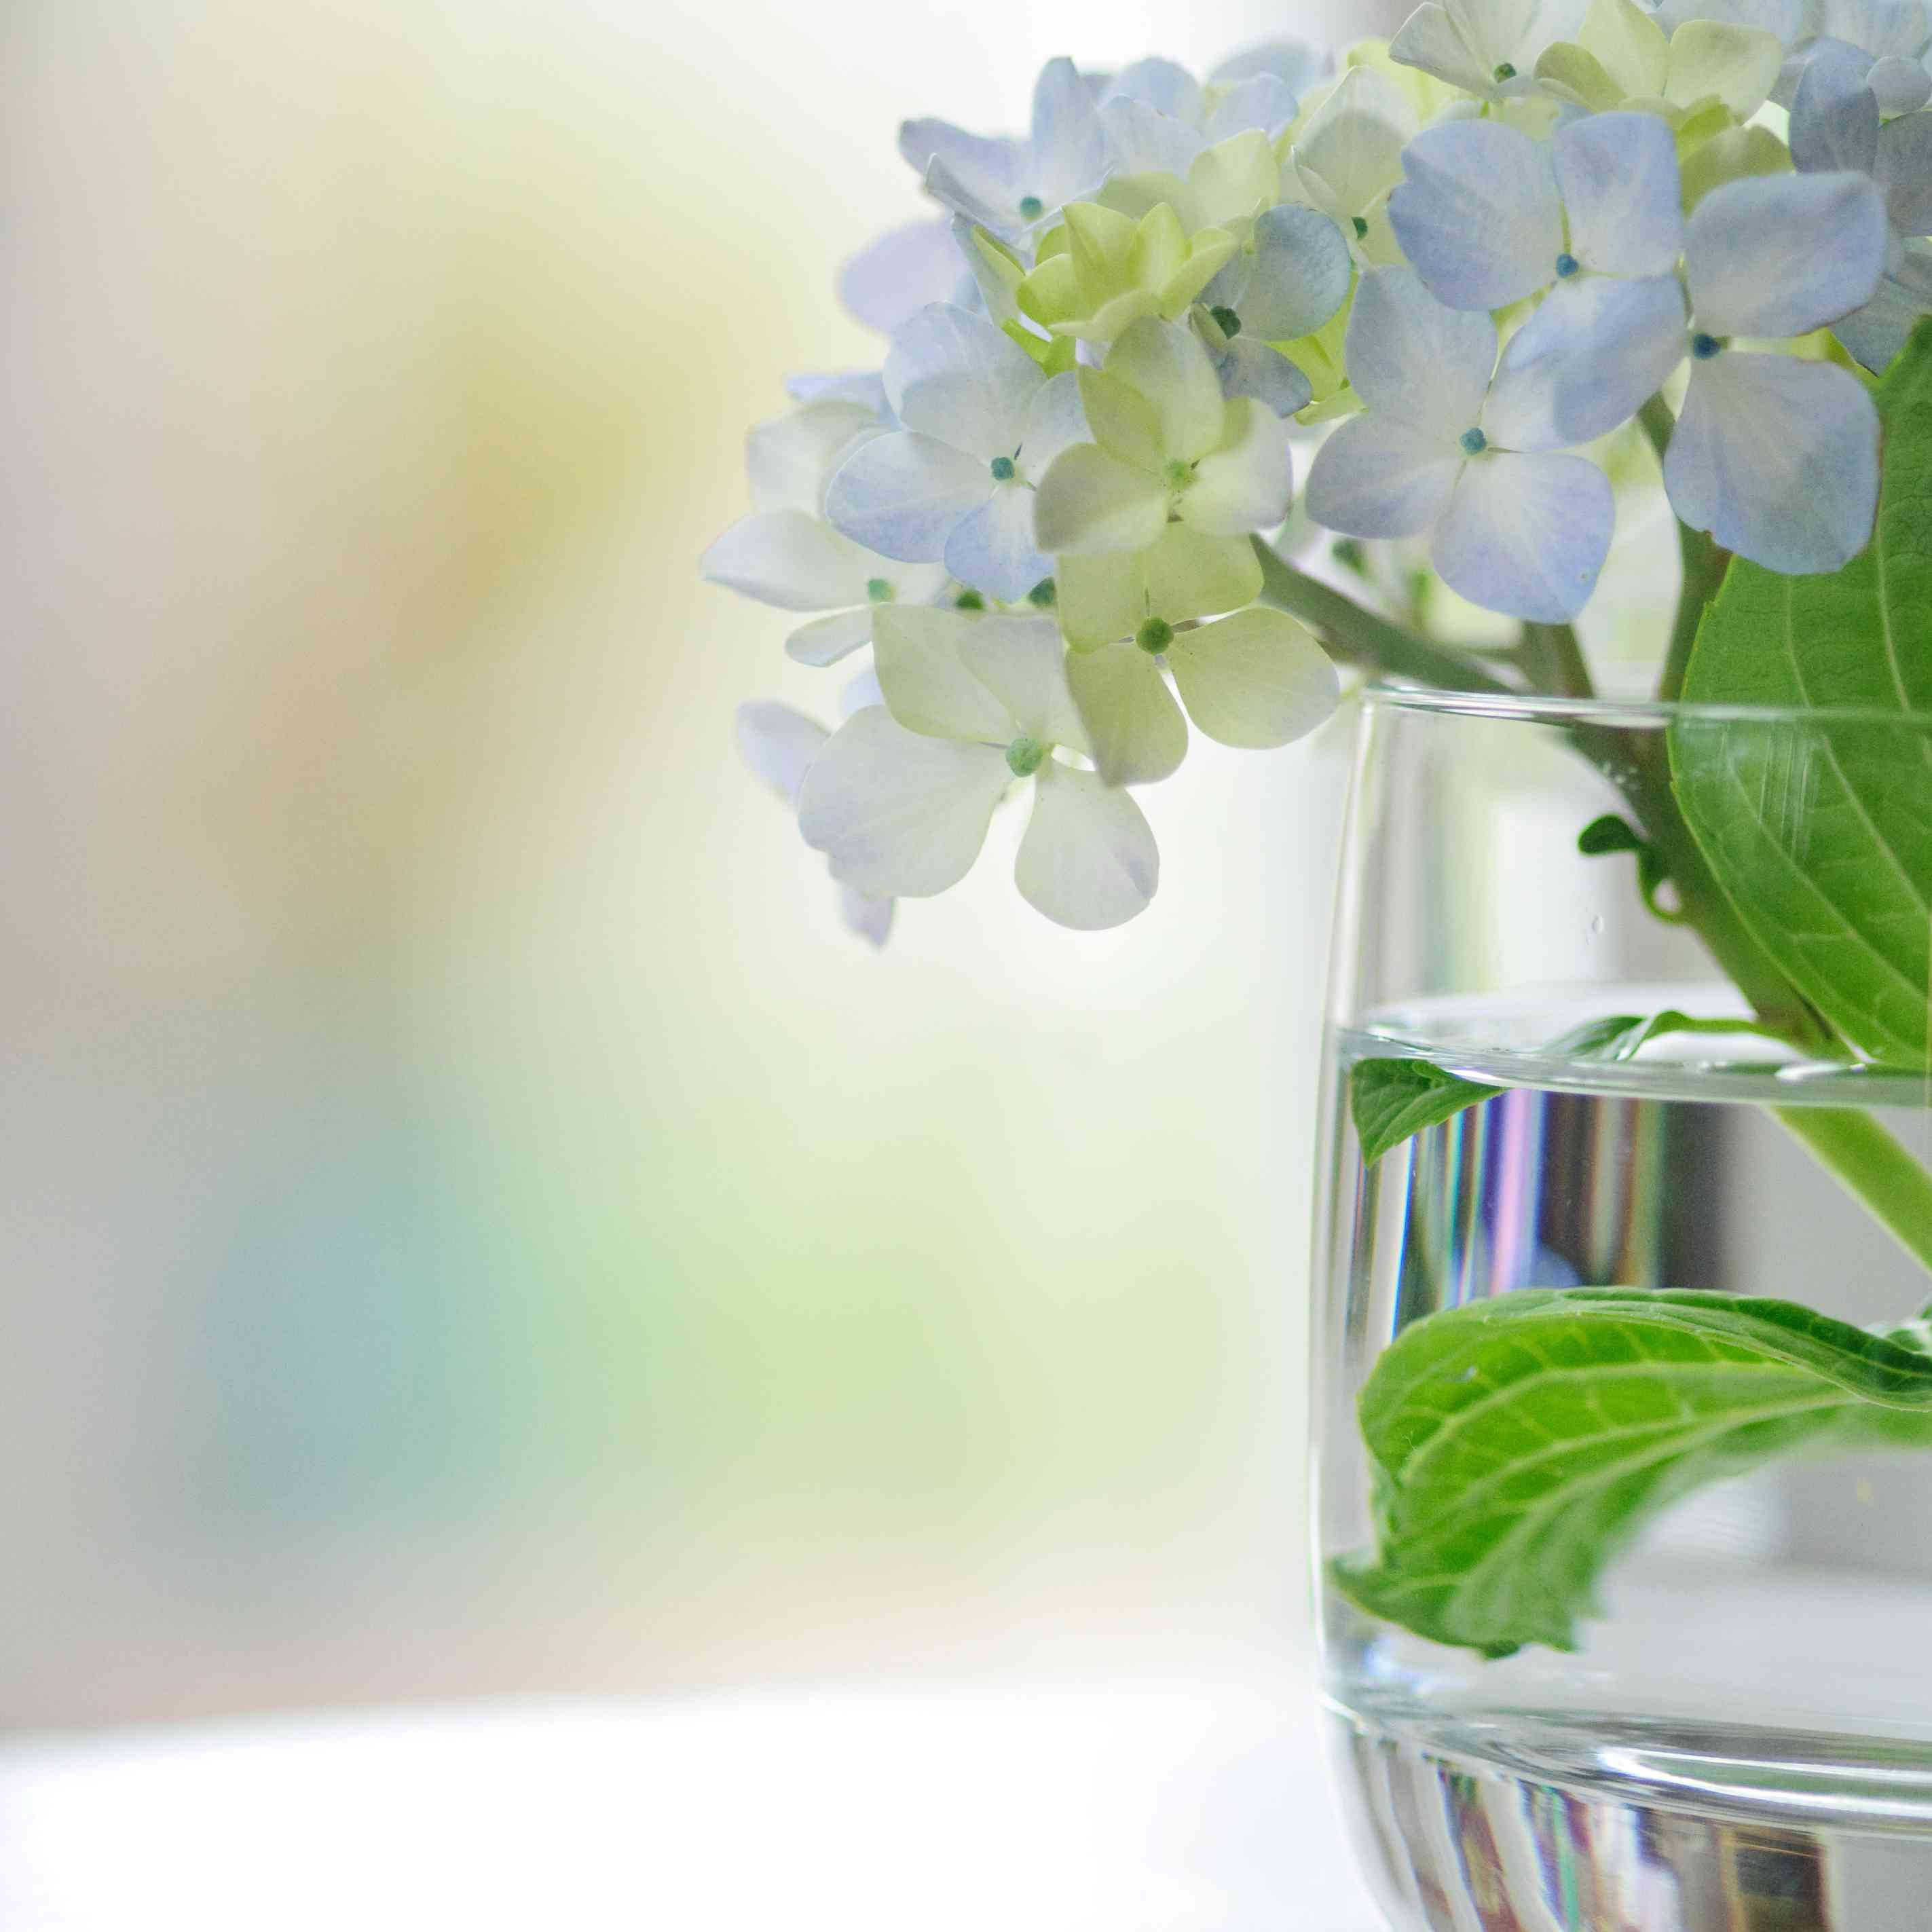 Hanging Lightbulb Vase Of How to Dry and Preserve Hydrangea Flowers with Regard to Hydrangeas Vase Gettyimages 103956334 589b63945f9b58819c837e07